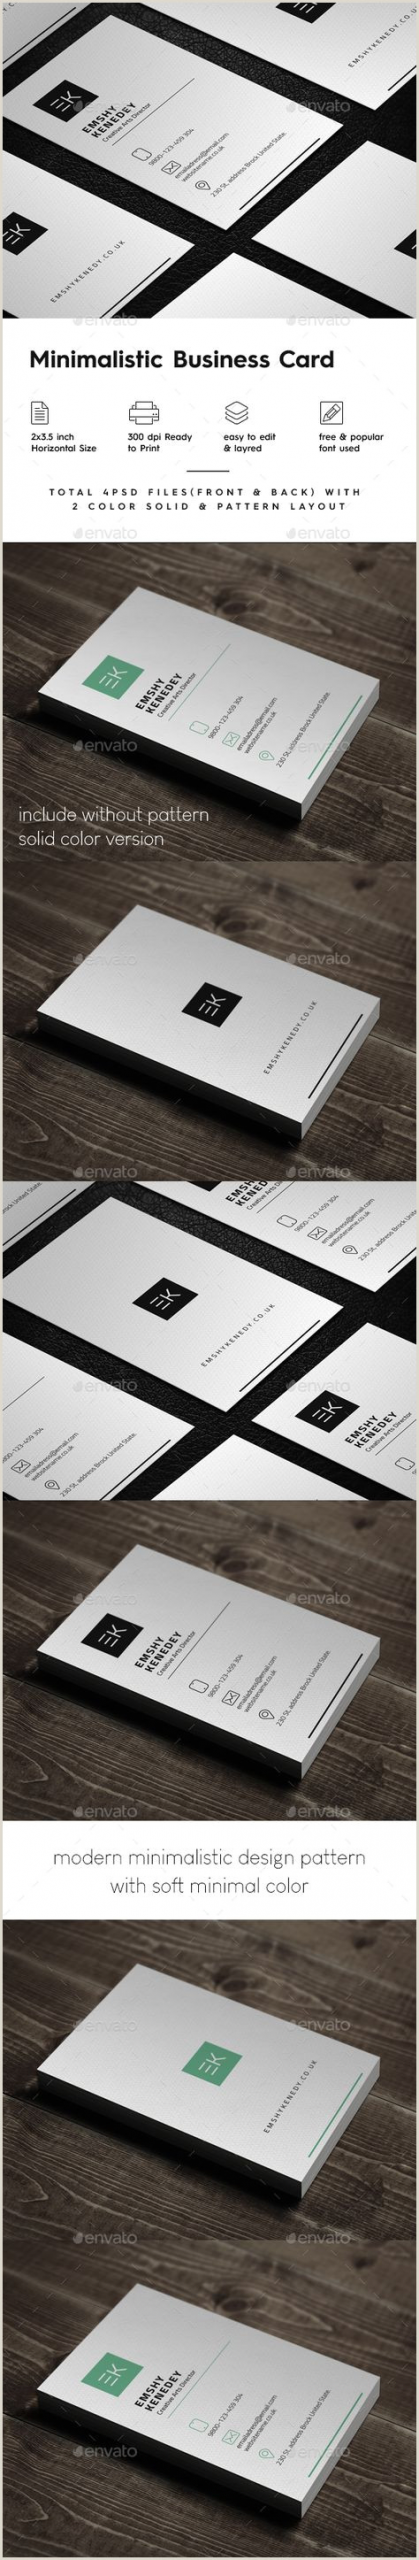 Photography Business Card Design 37 Trendy Graphy Business Cards Minimal